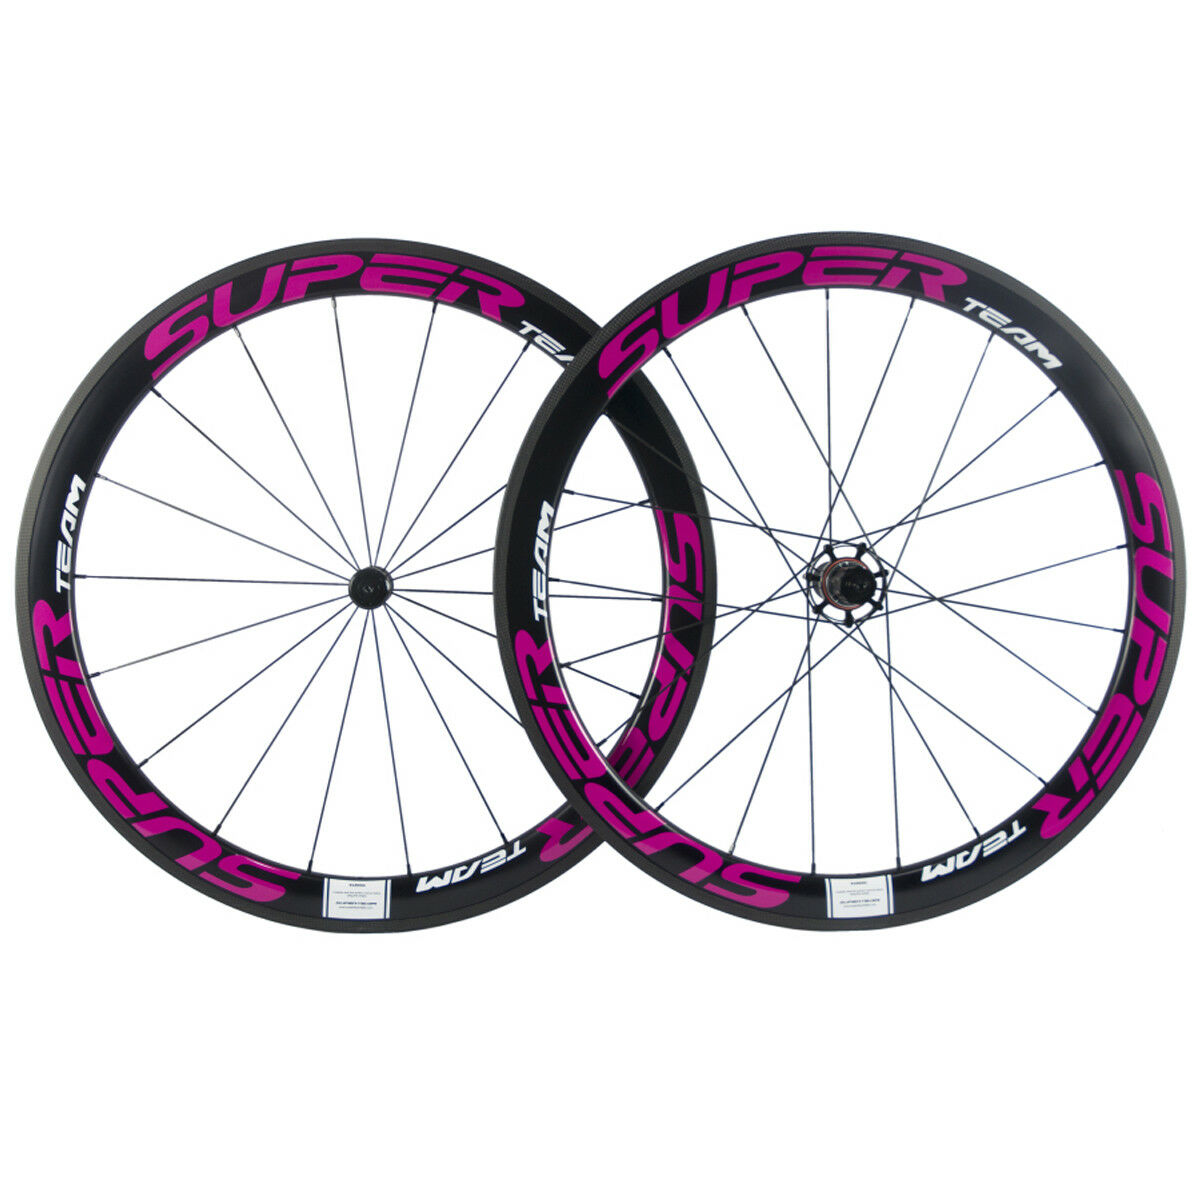 Superteam Carbon Wheels 50mm pink red  Bicycle Wheelset Road Clincher 25mm Width  for sale